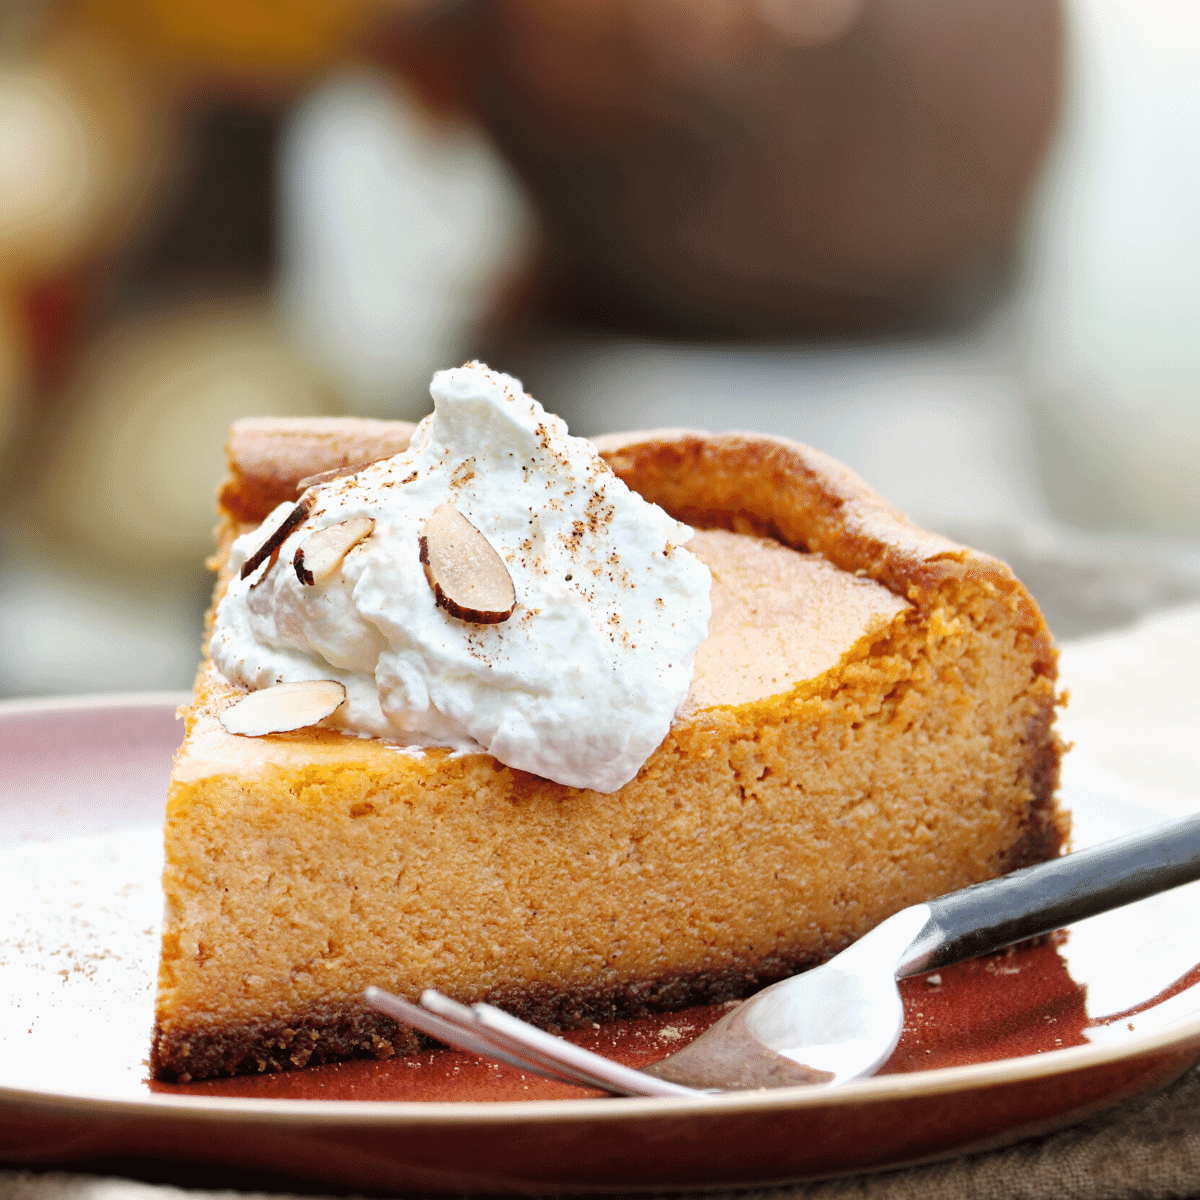 Keto Pumpkin Cheesecake recipe gluten free low carb